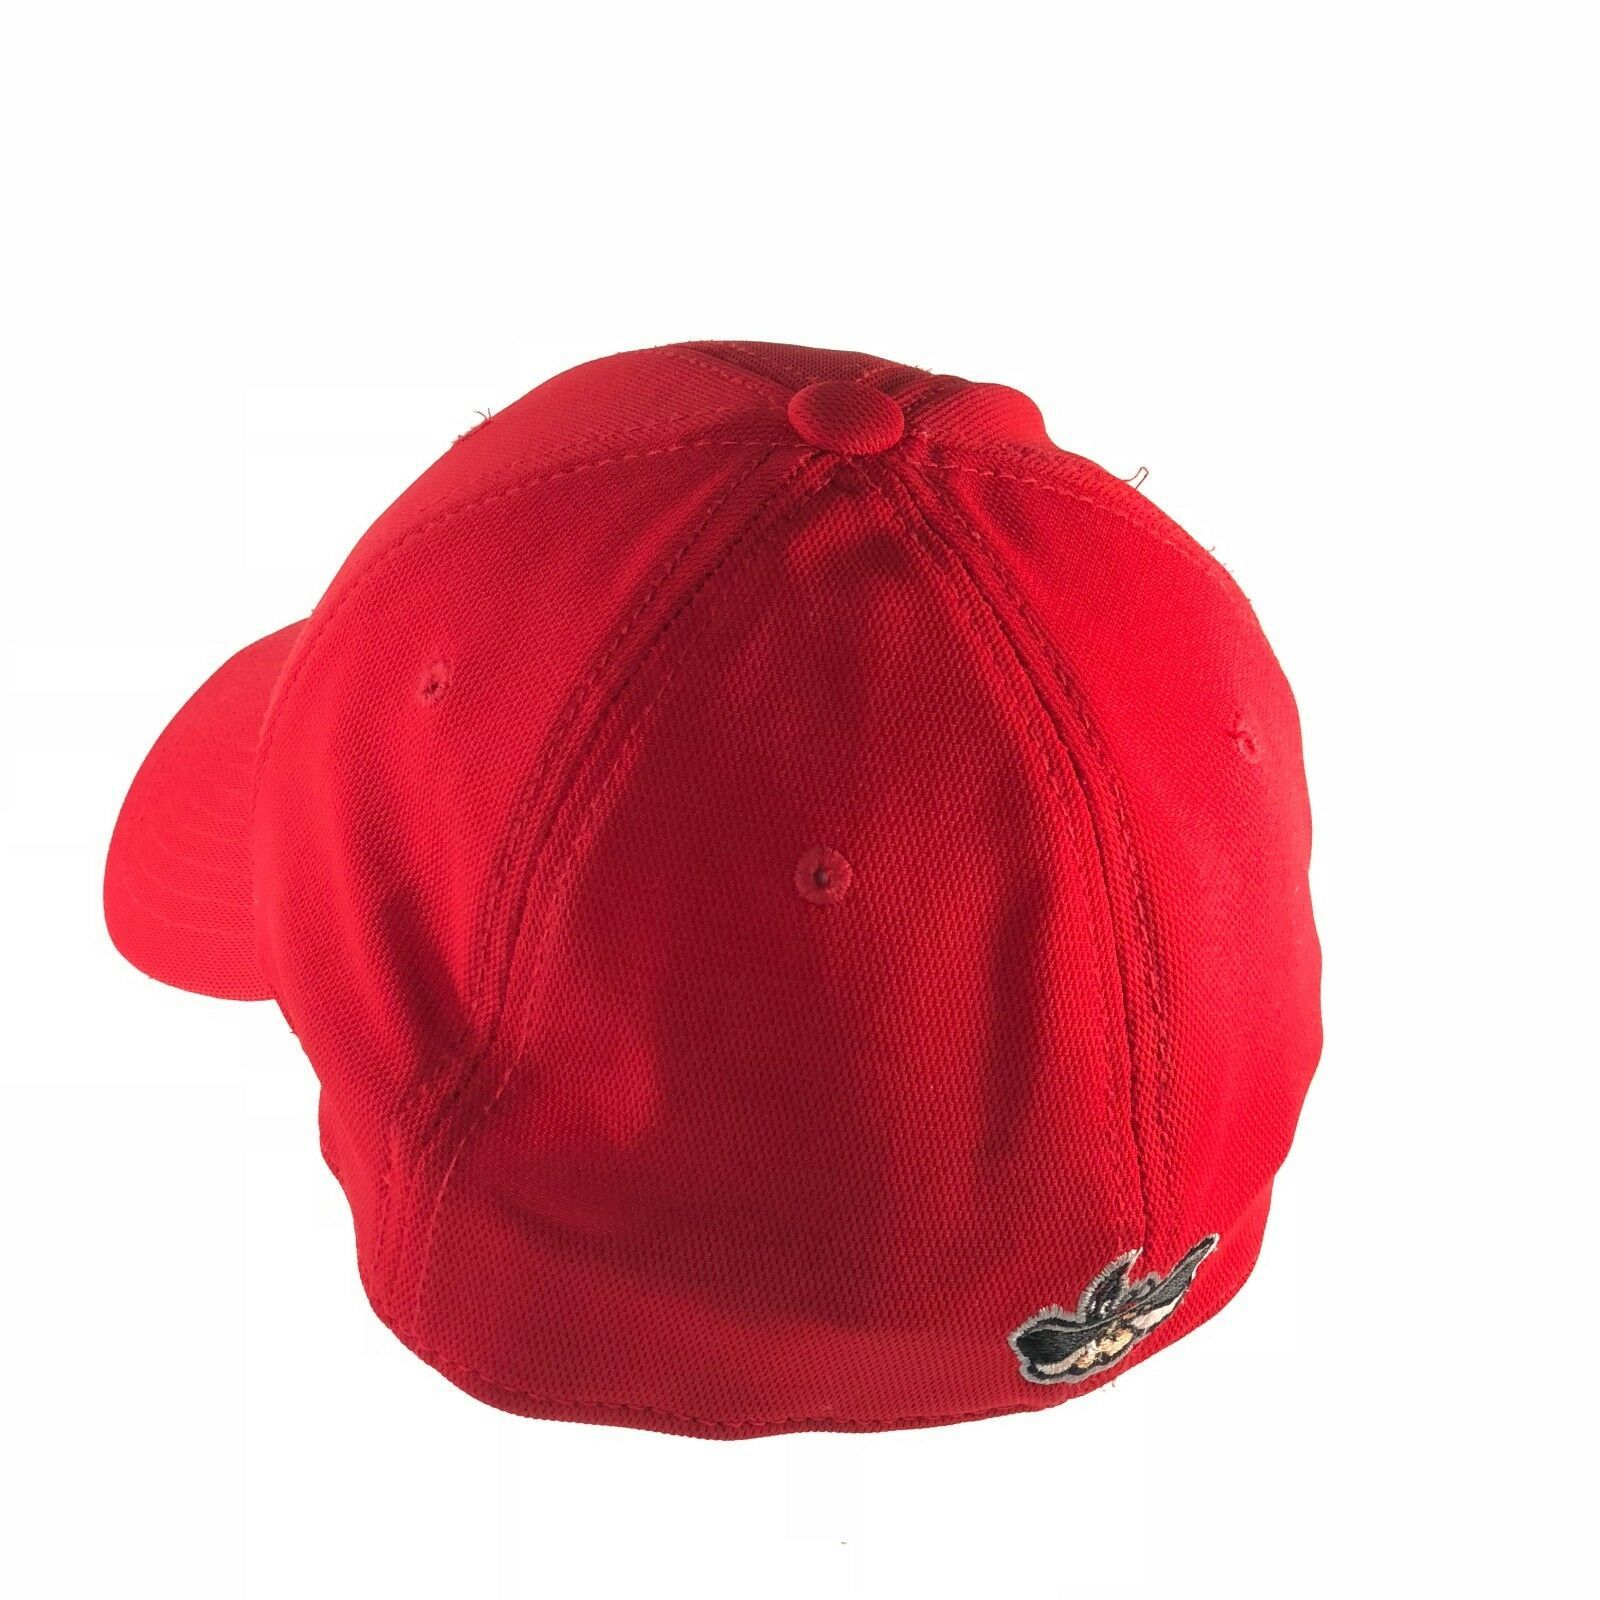 UNLV Rebels University Of Las Vegas 90s Hat Cap Fitted One Size Men Red Stretch image 6